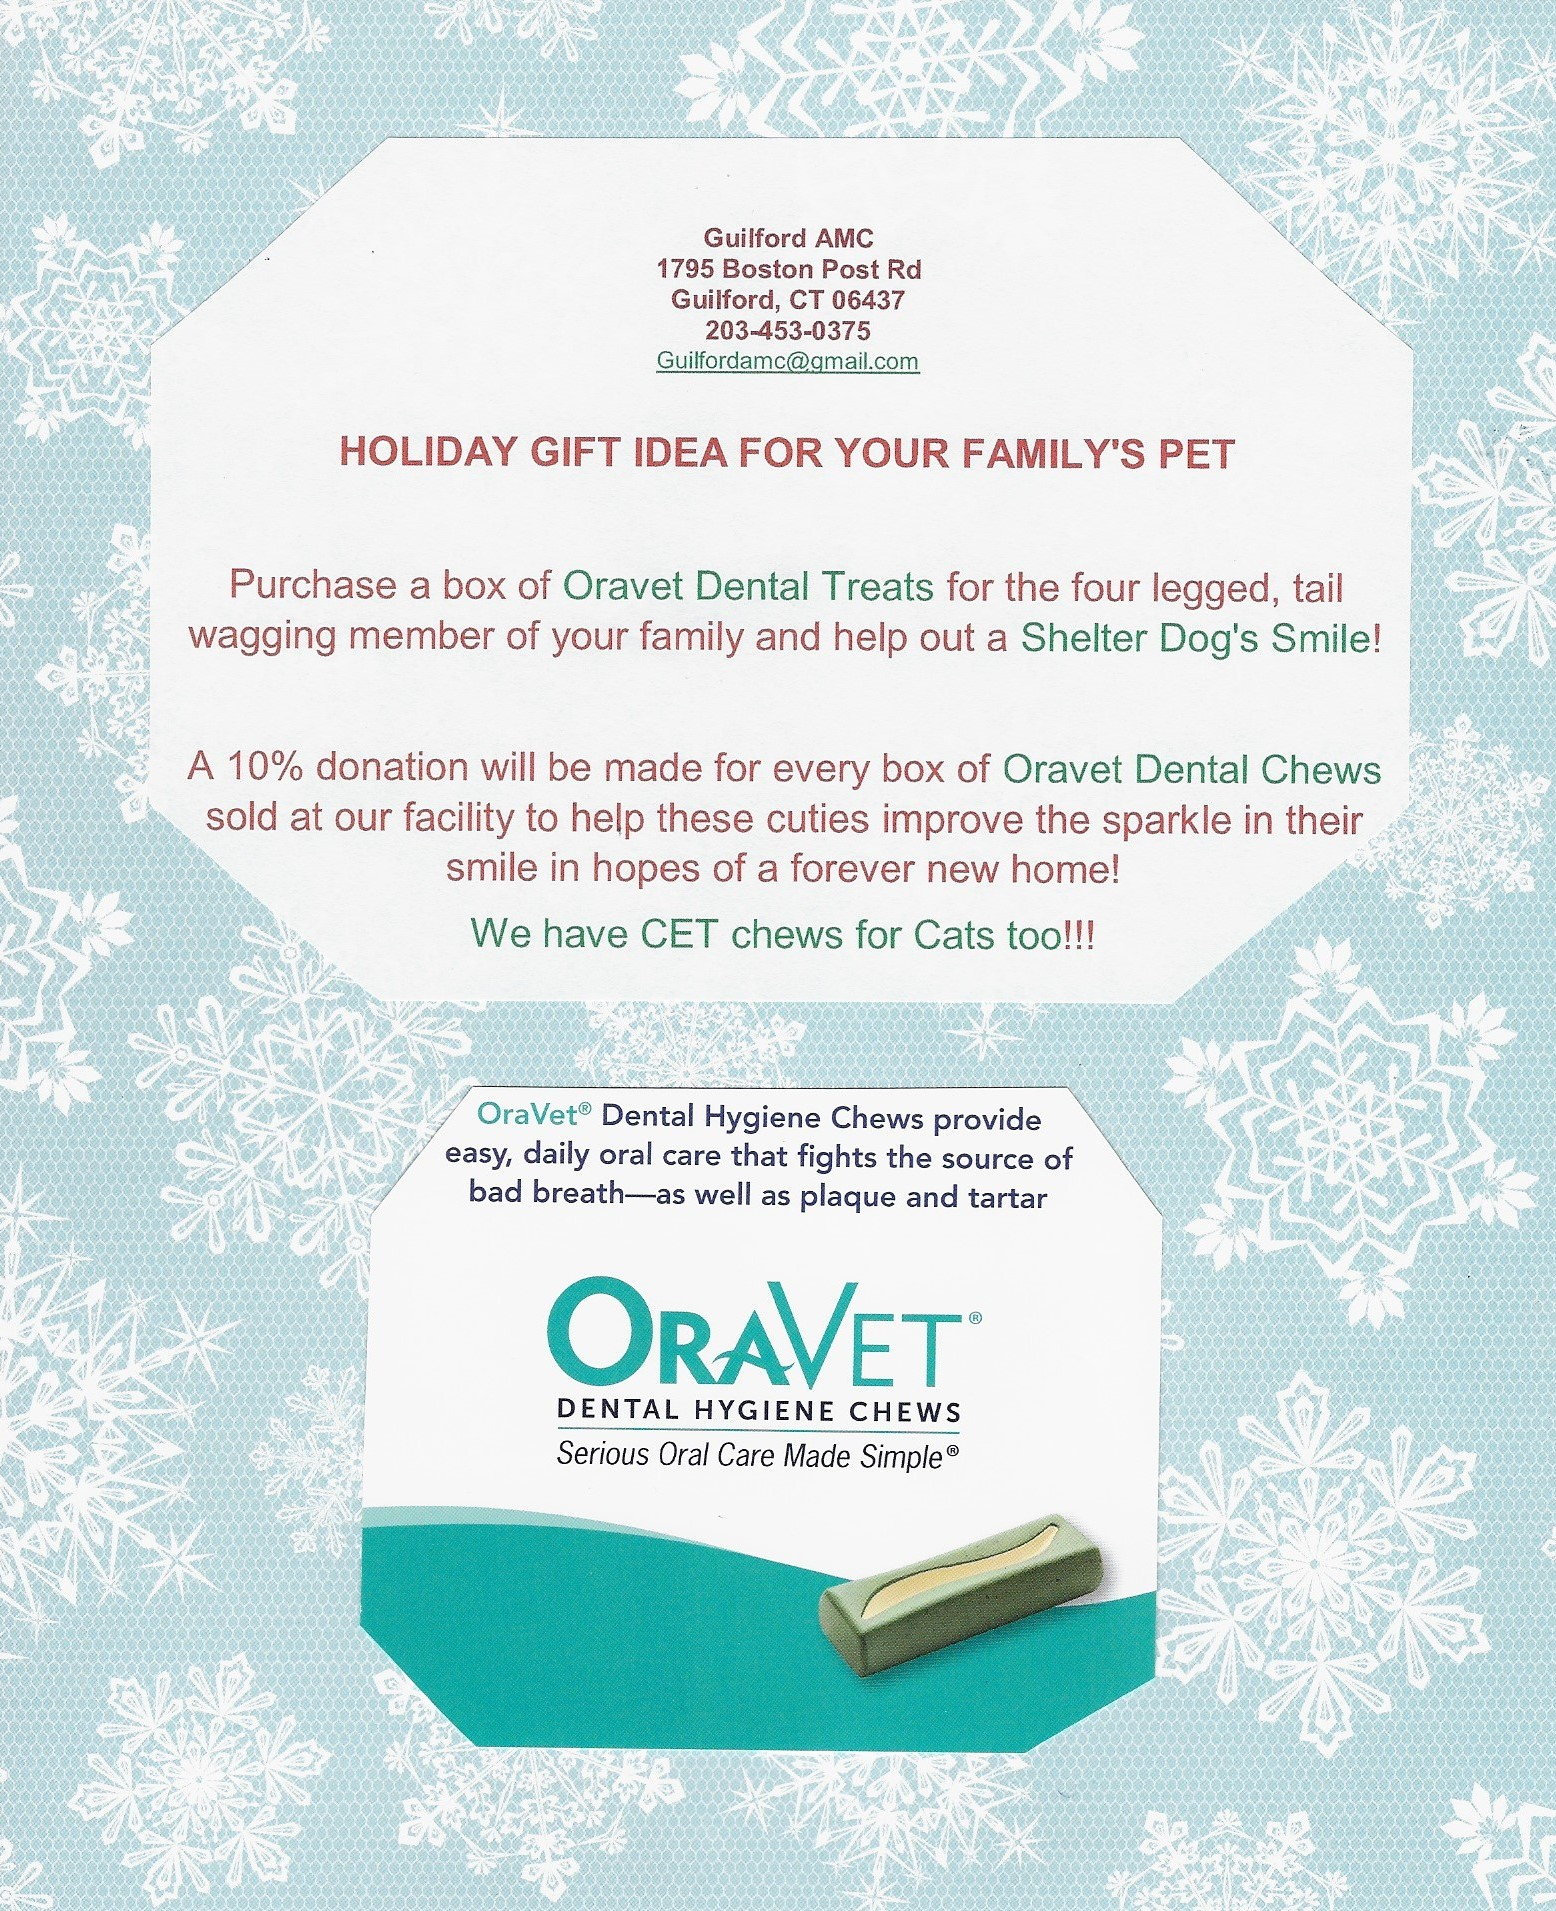 HOLIDAY GIFT IDEA | Guilford Animal Medical Center Guilford, Connecticut